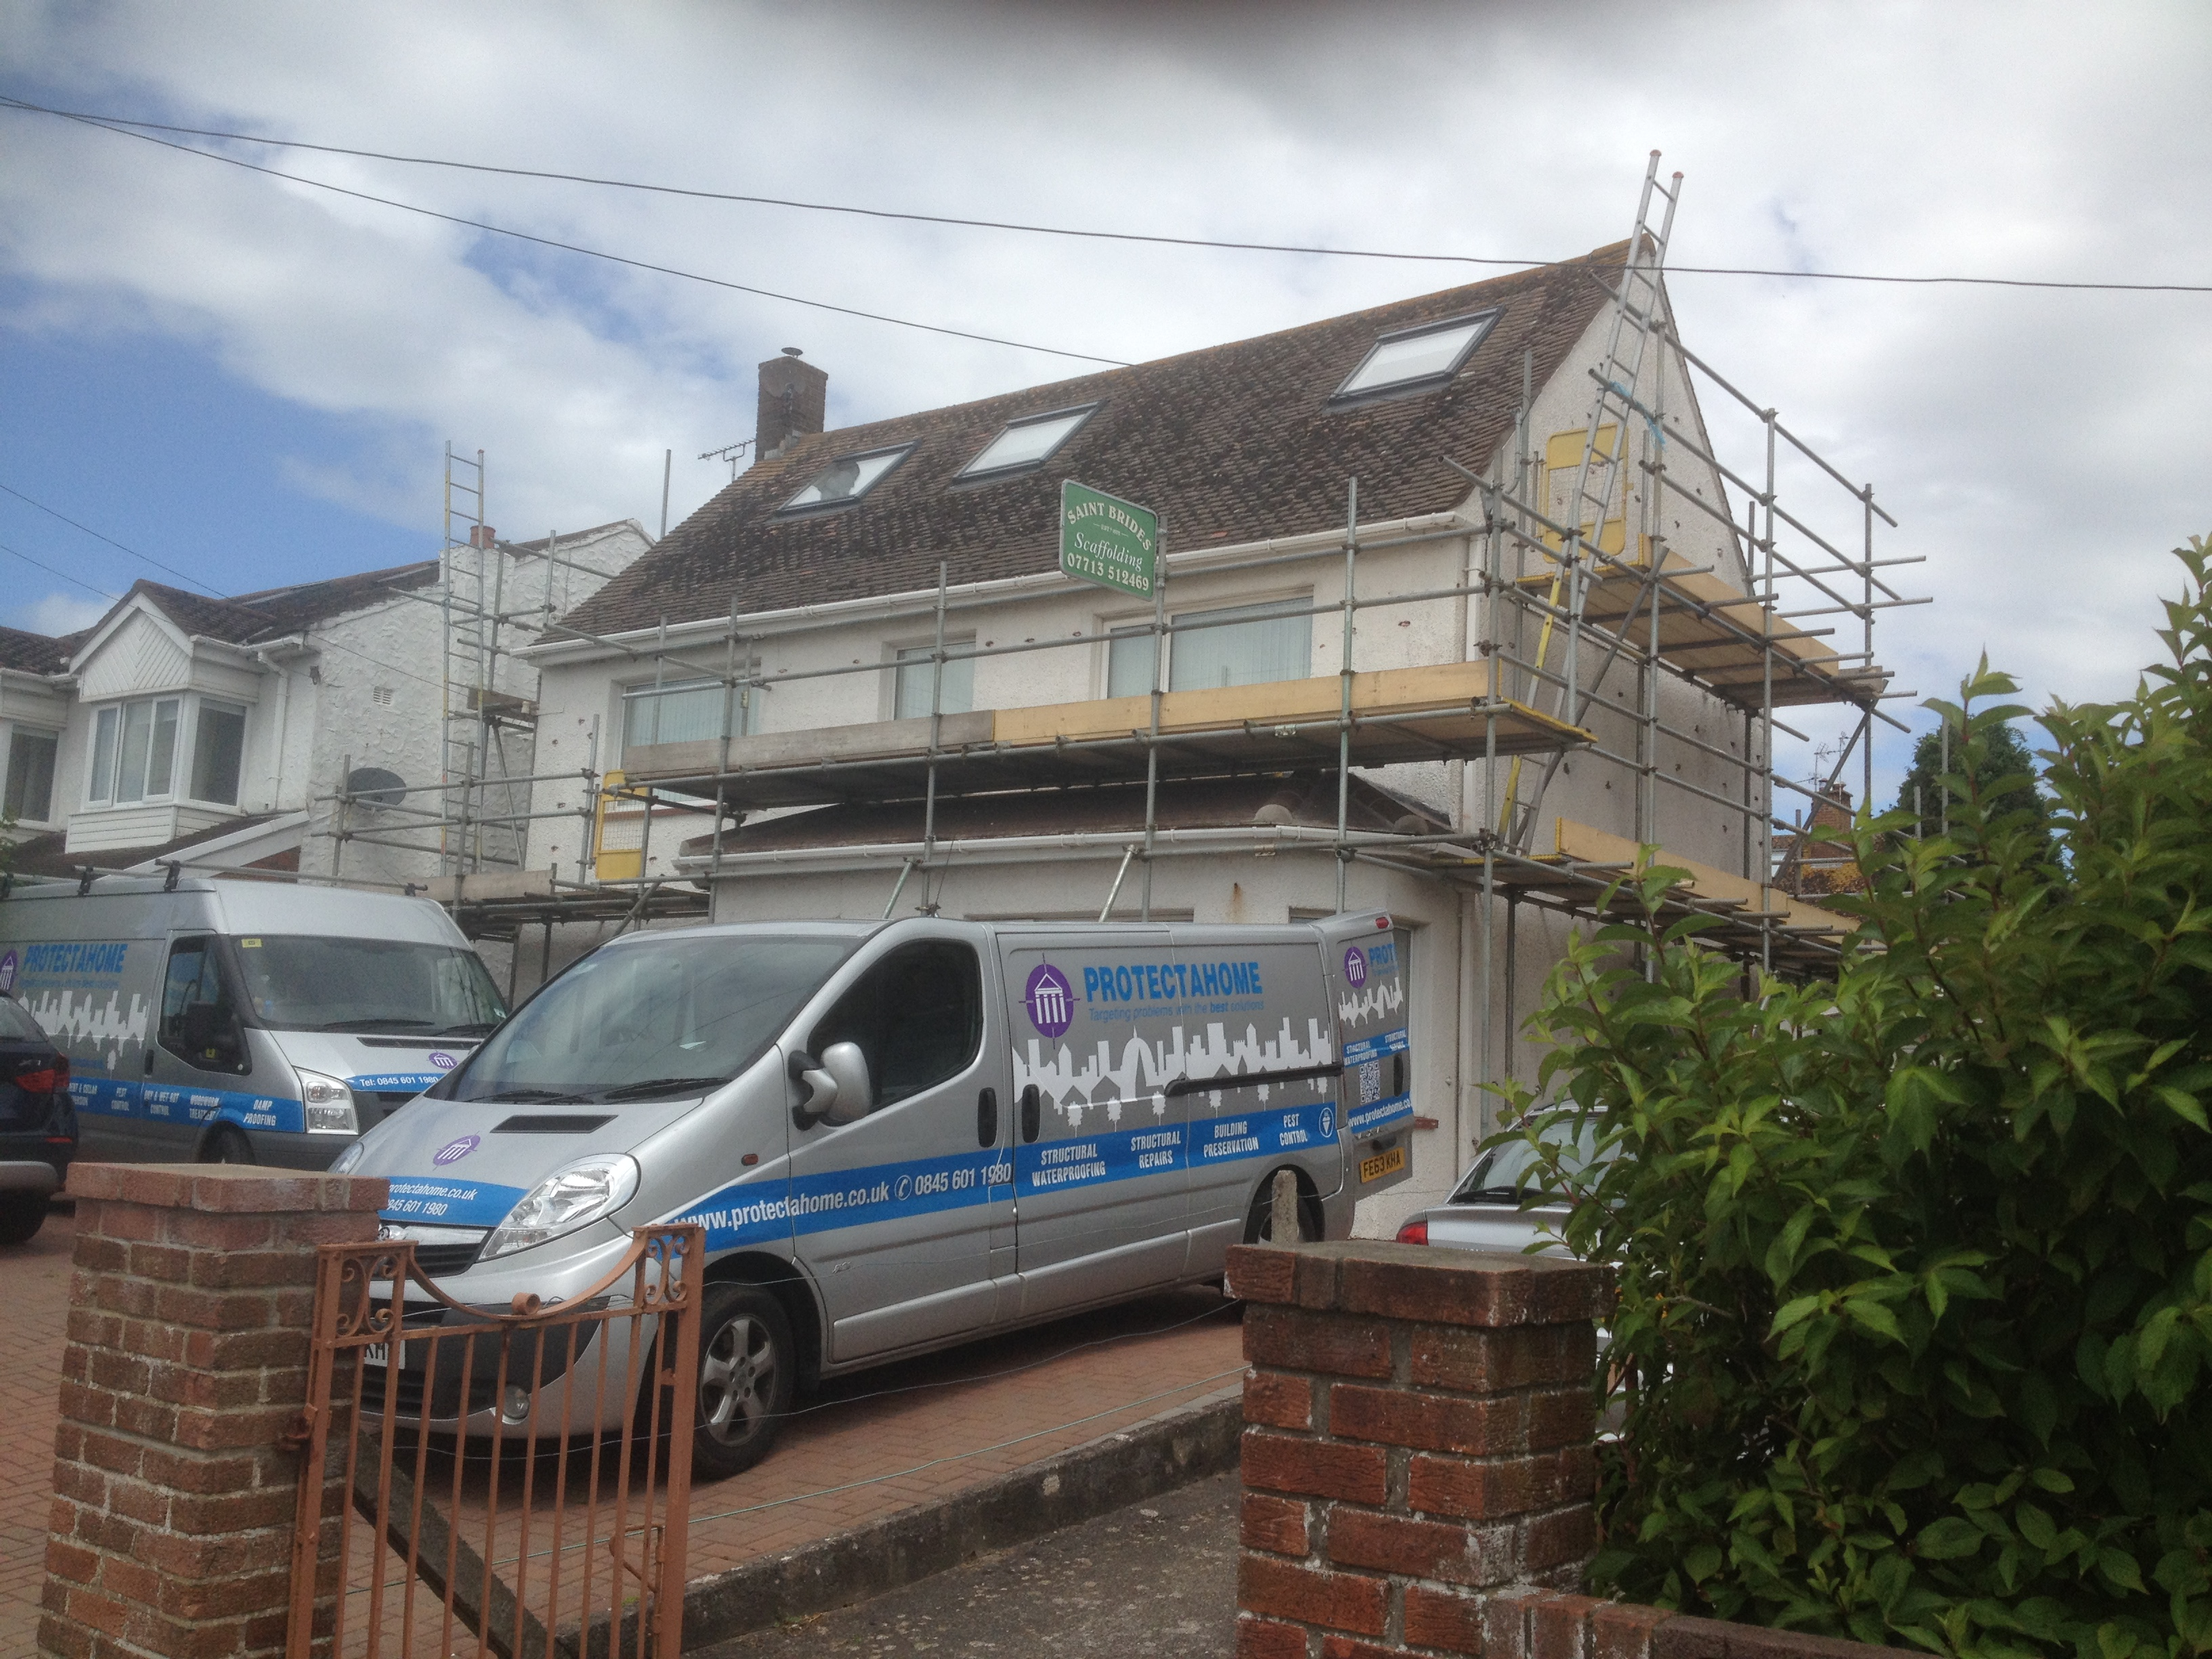 Protectahome Technicians on site installing Helifix DryFix and Cem Ties